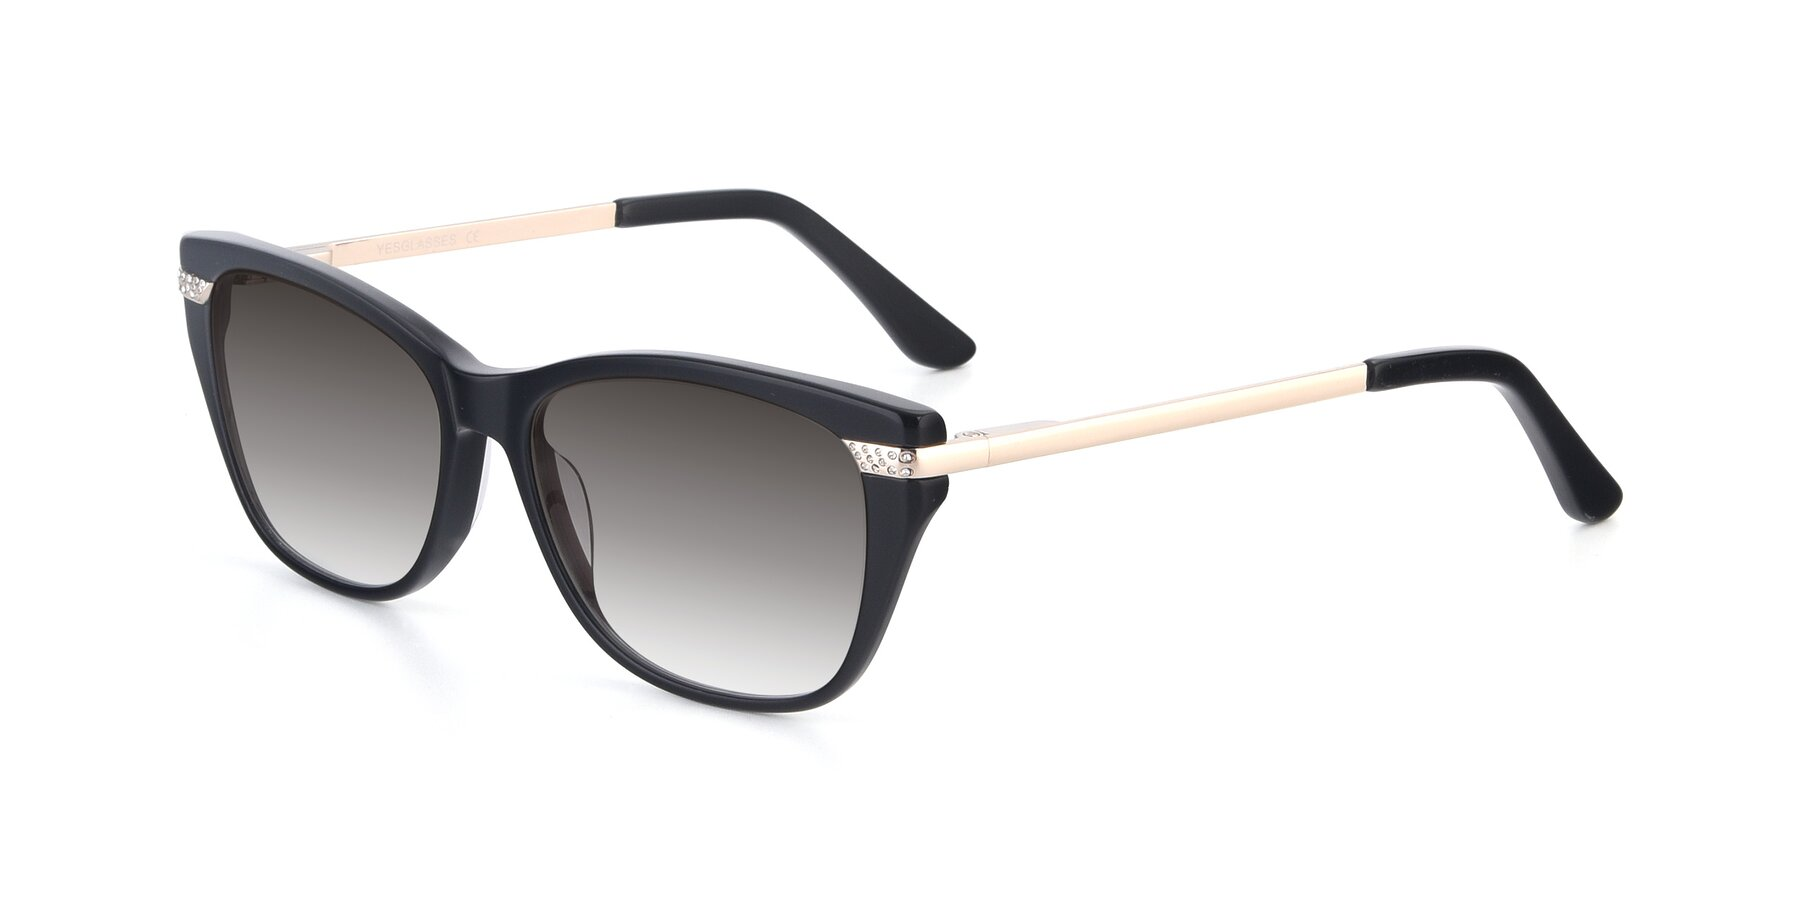 Angle of 17515 in Black with Gray Gradient Lenses